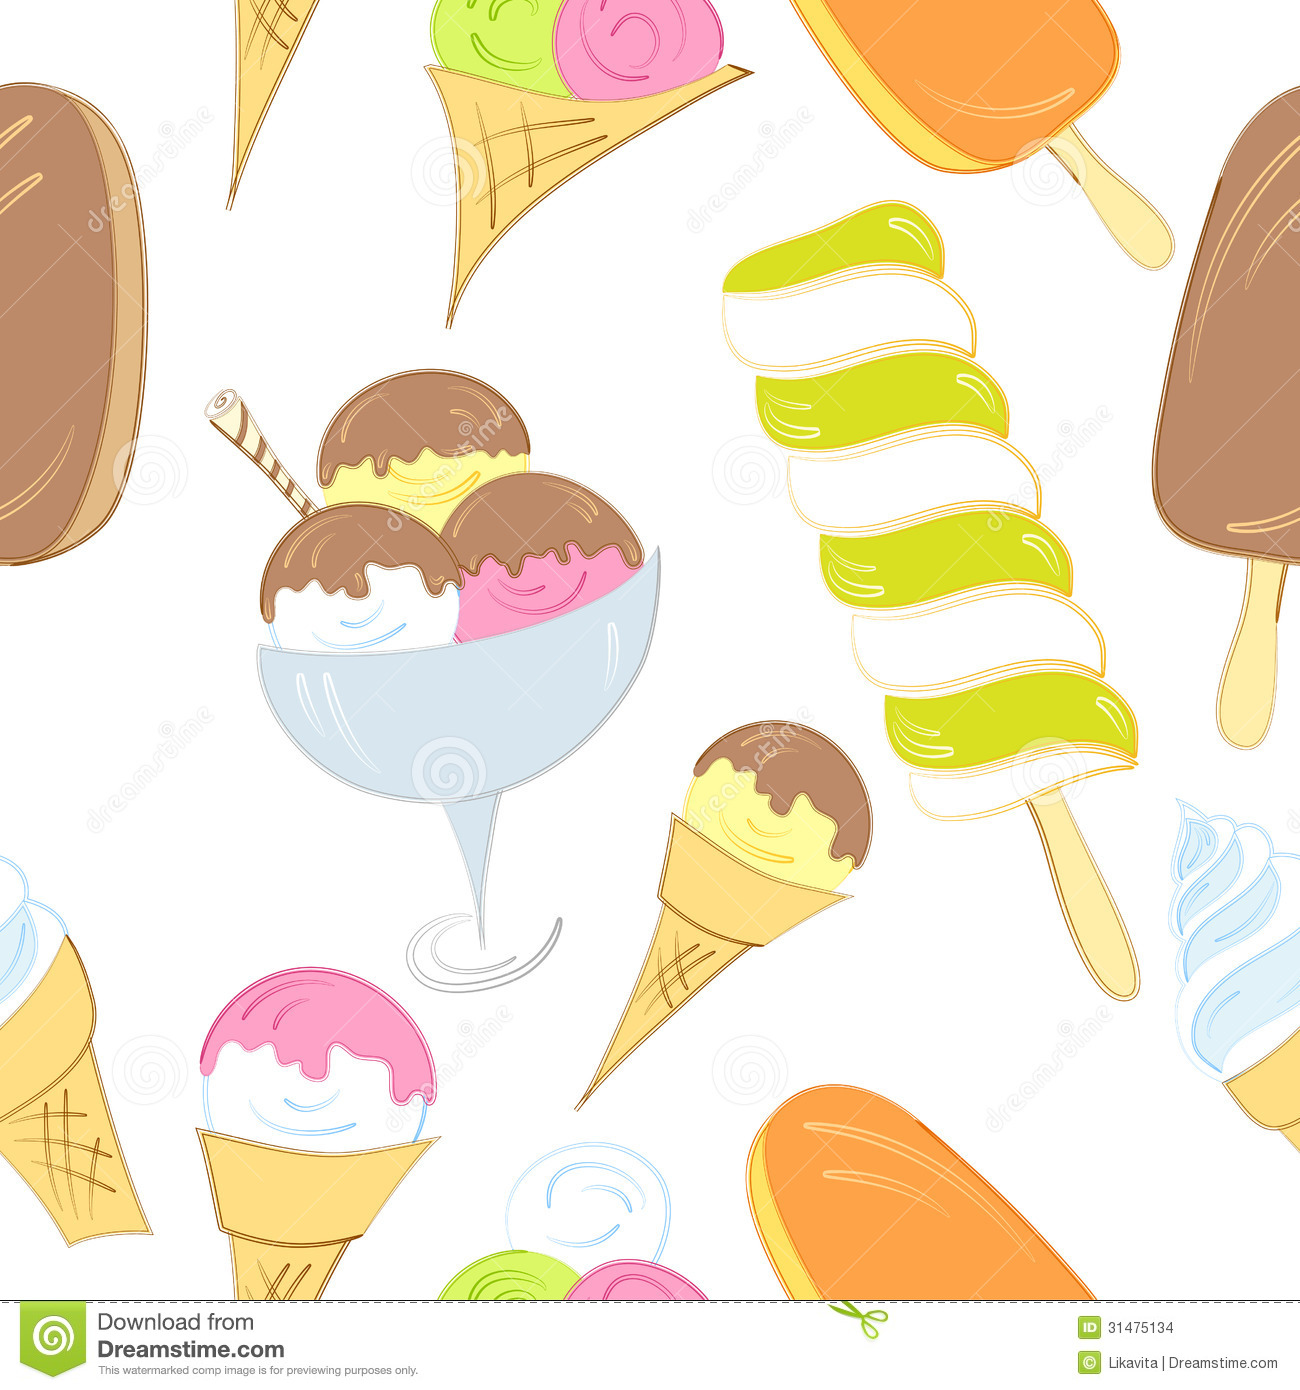 Seamless Ice Cream Wallpaper Royalty Free Stock Images: Ice Cream Seamless Pattern Stock Photo. Image Of Cream